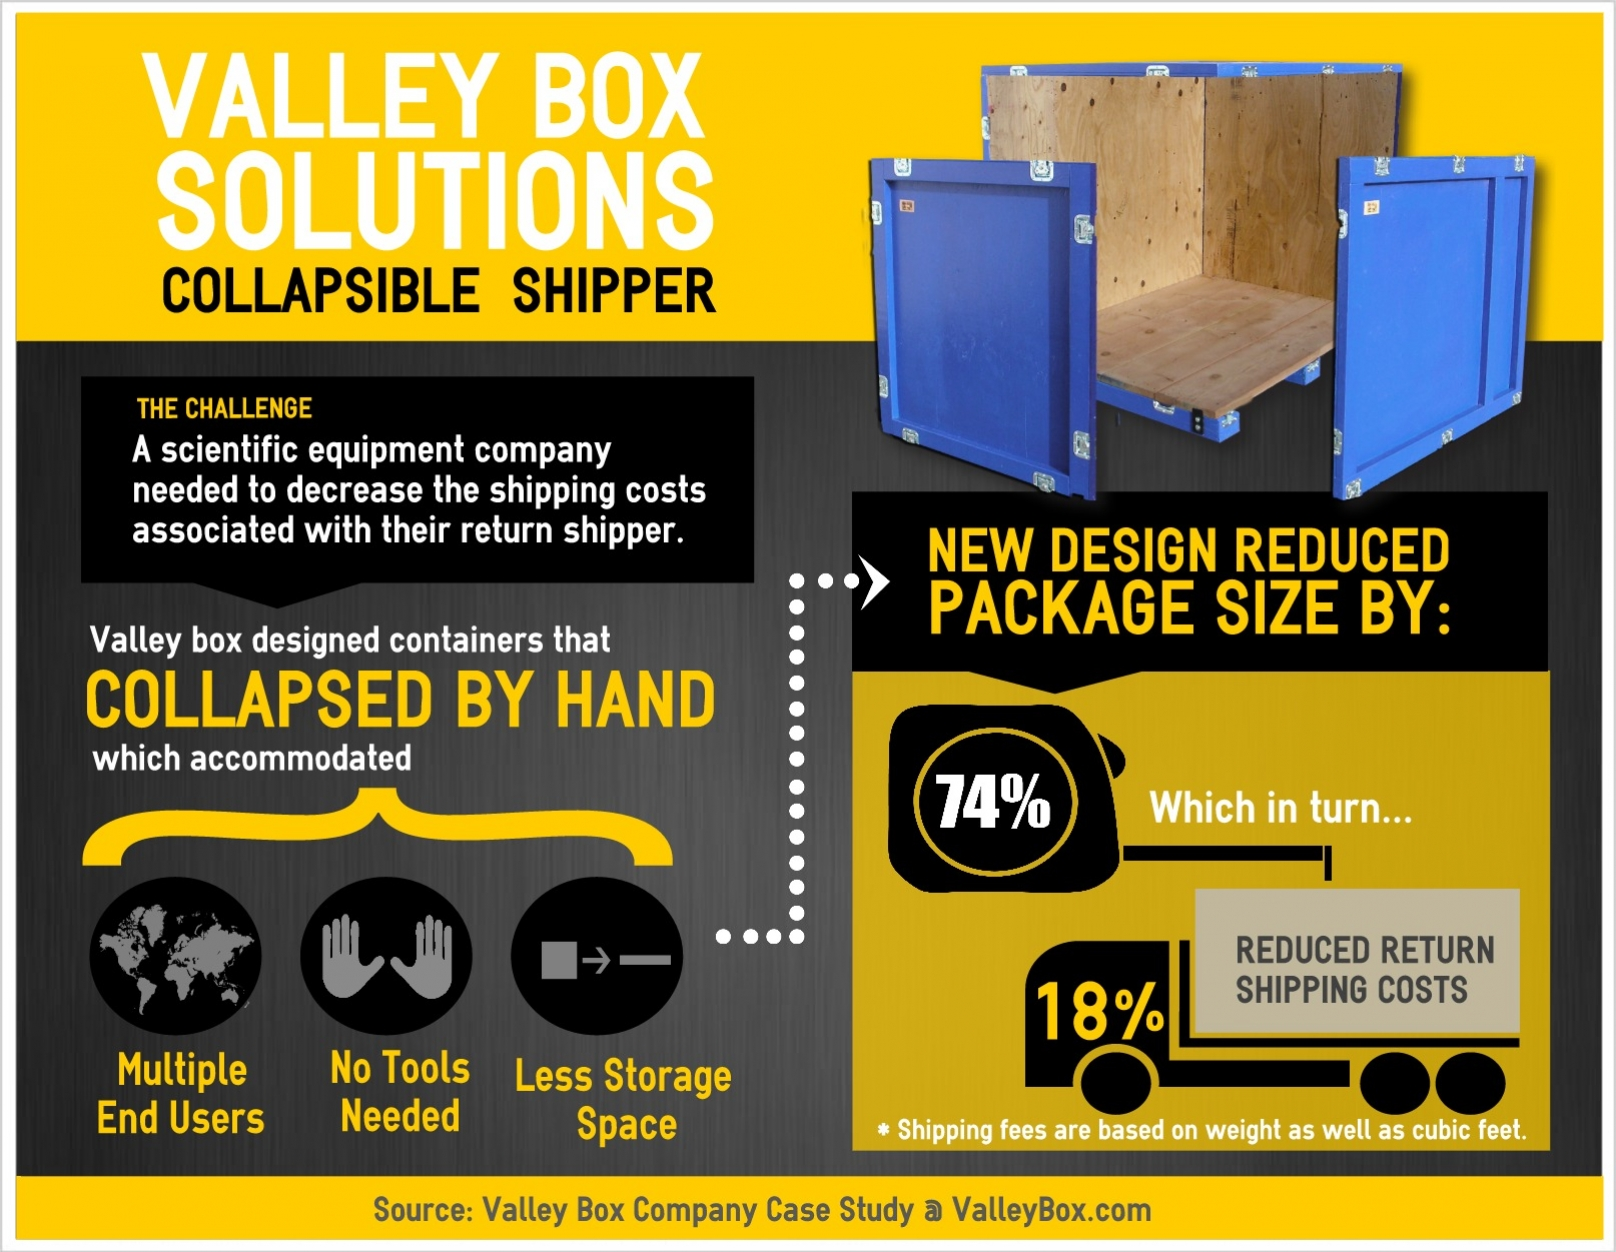 Collapsible-Shipper